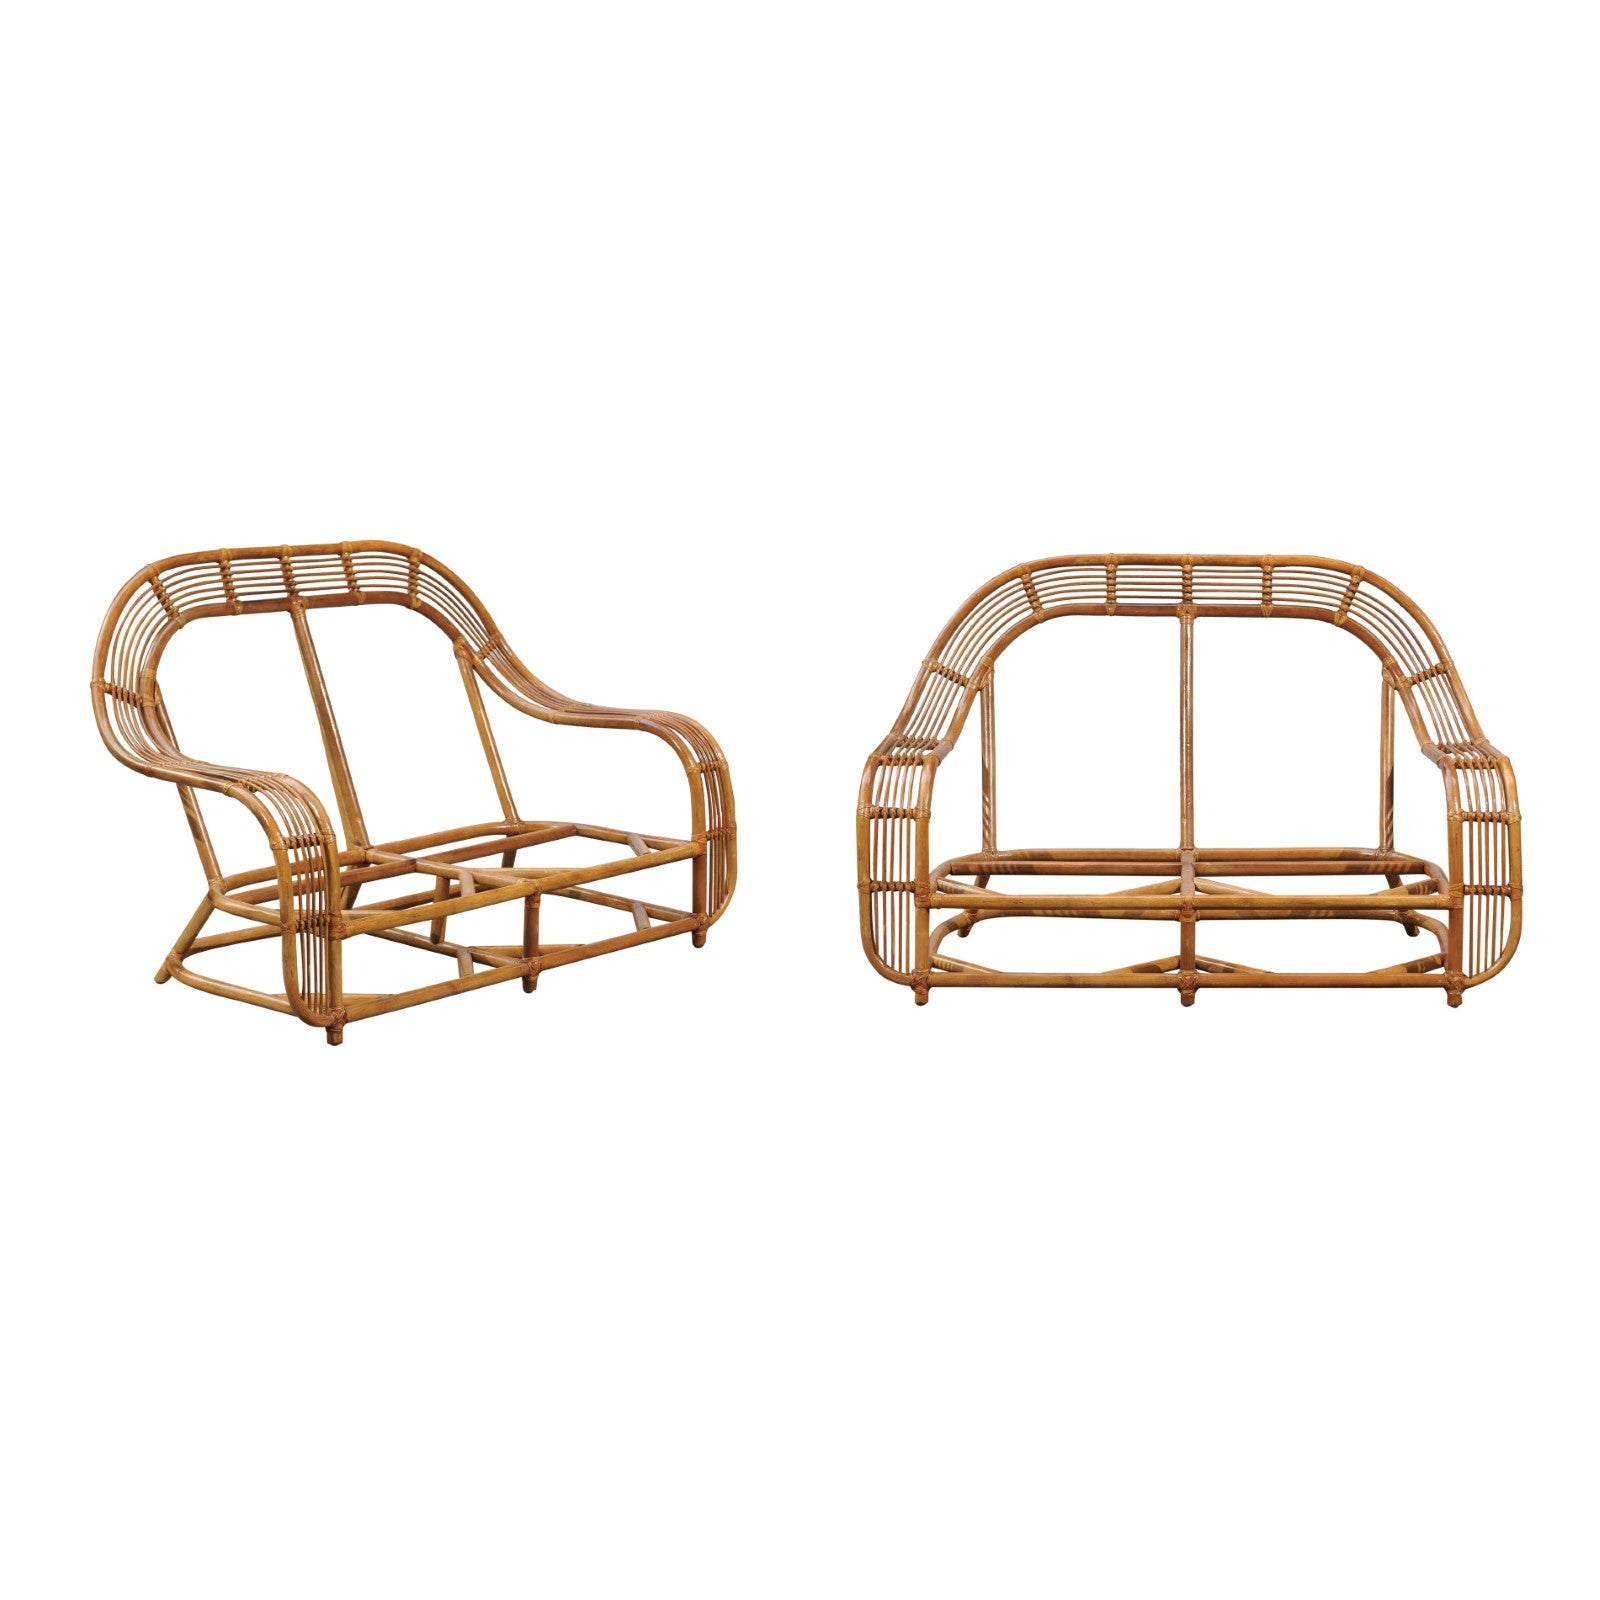 Restored Pair of Breille Sofas by Henry Olko for Willow and Reed, circa 1978